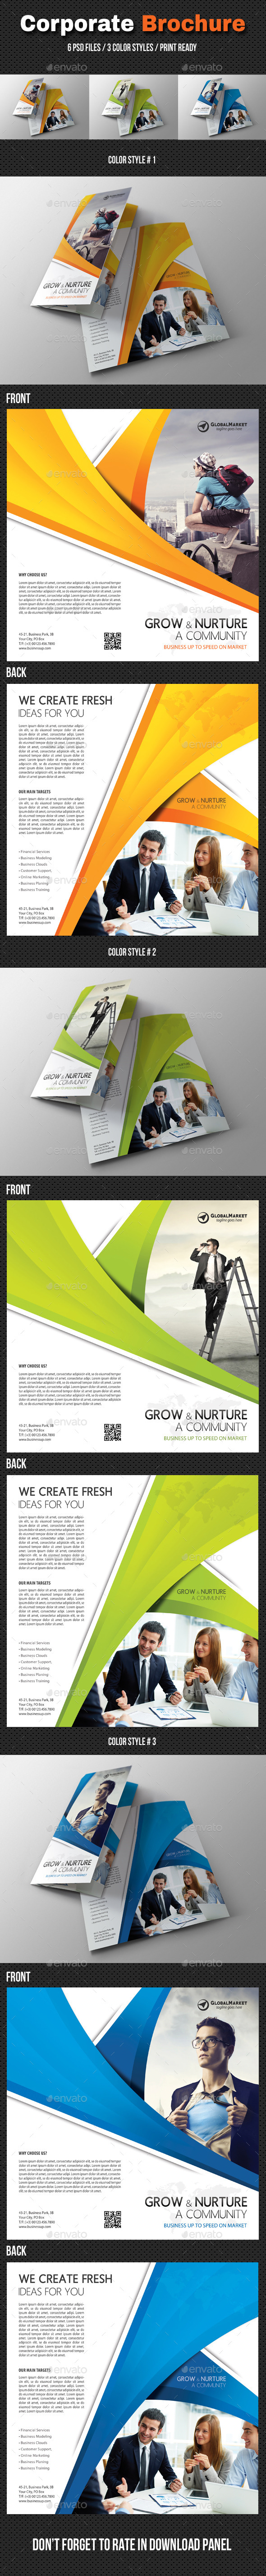 Corporate Bifold Brochure 03 - Corporate Brochures